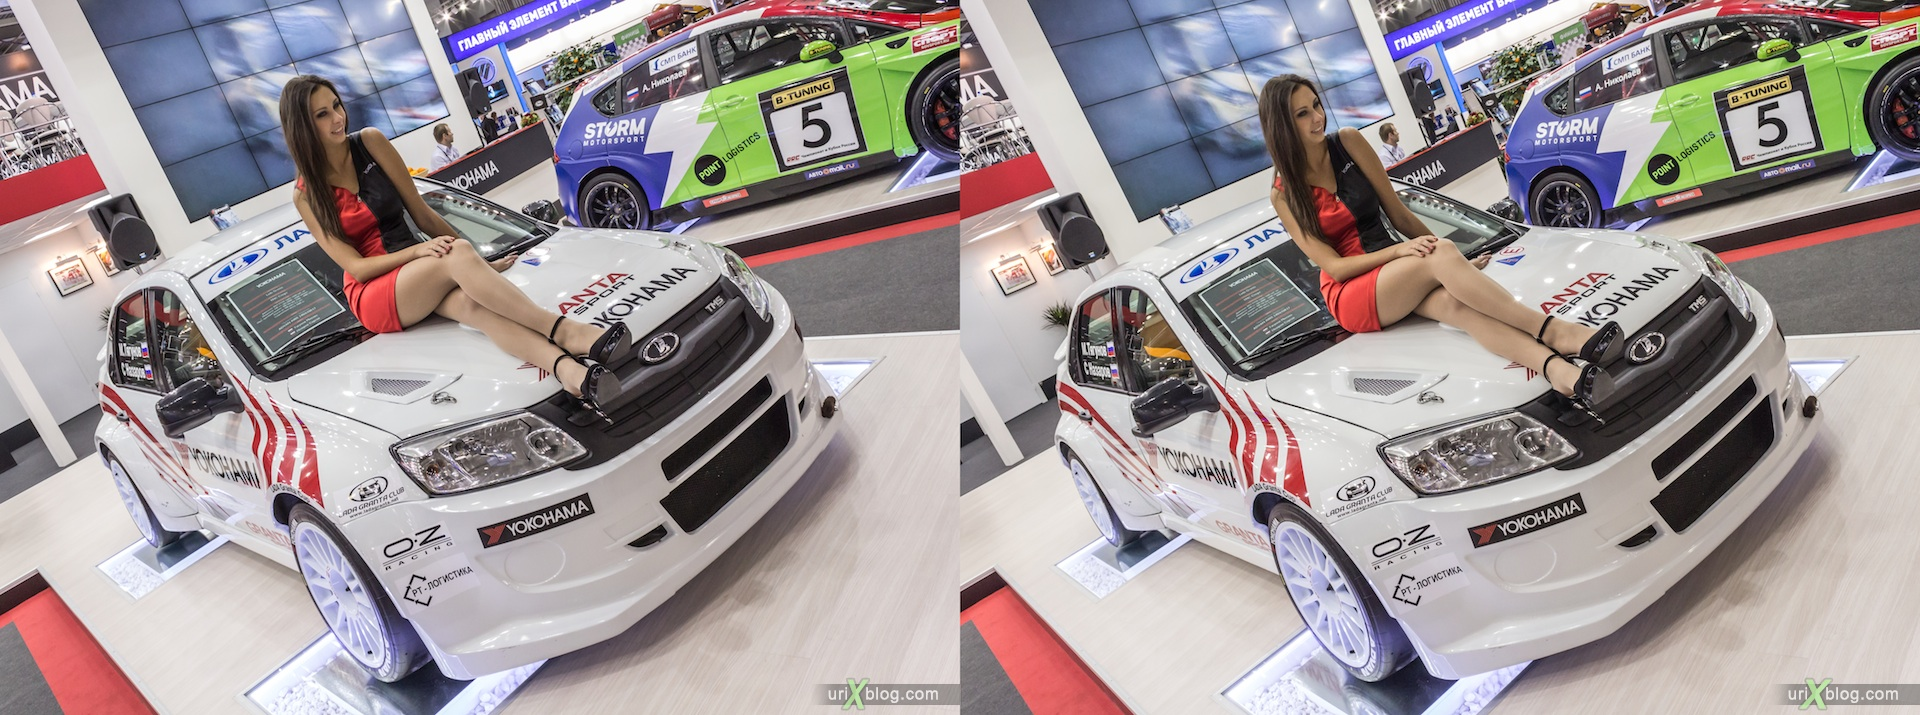 2012, Lada TMS Sport, girl, model, Moscow International Automobile Salon, auto show, 3D, stereo pair, cross-eyed, crossview